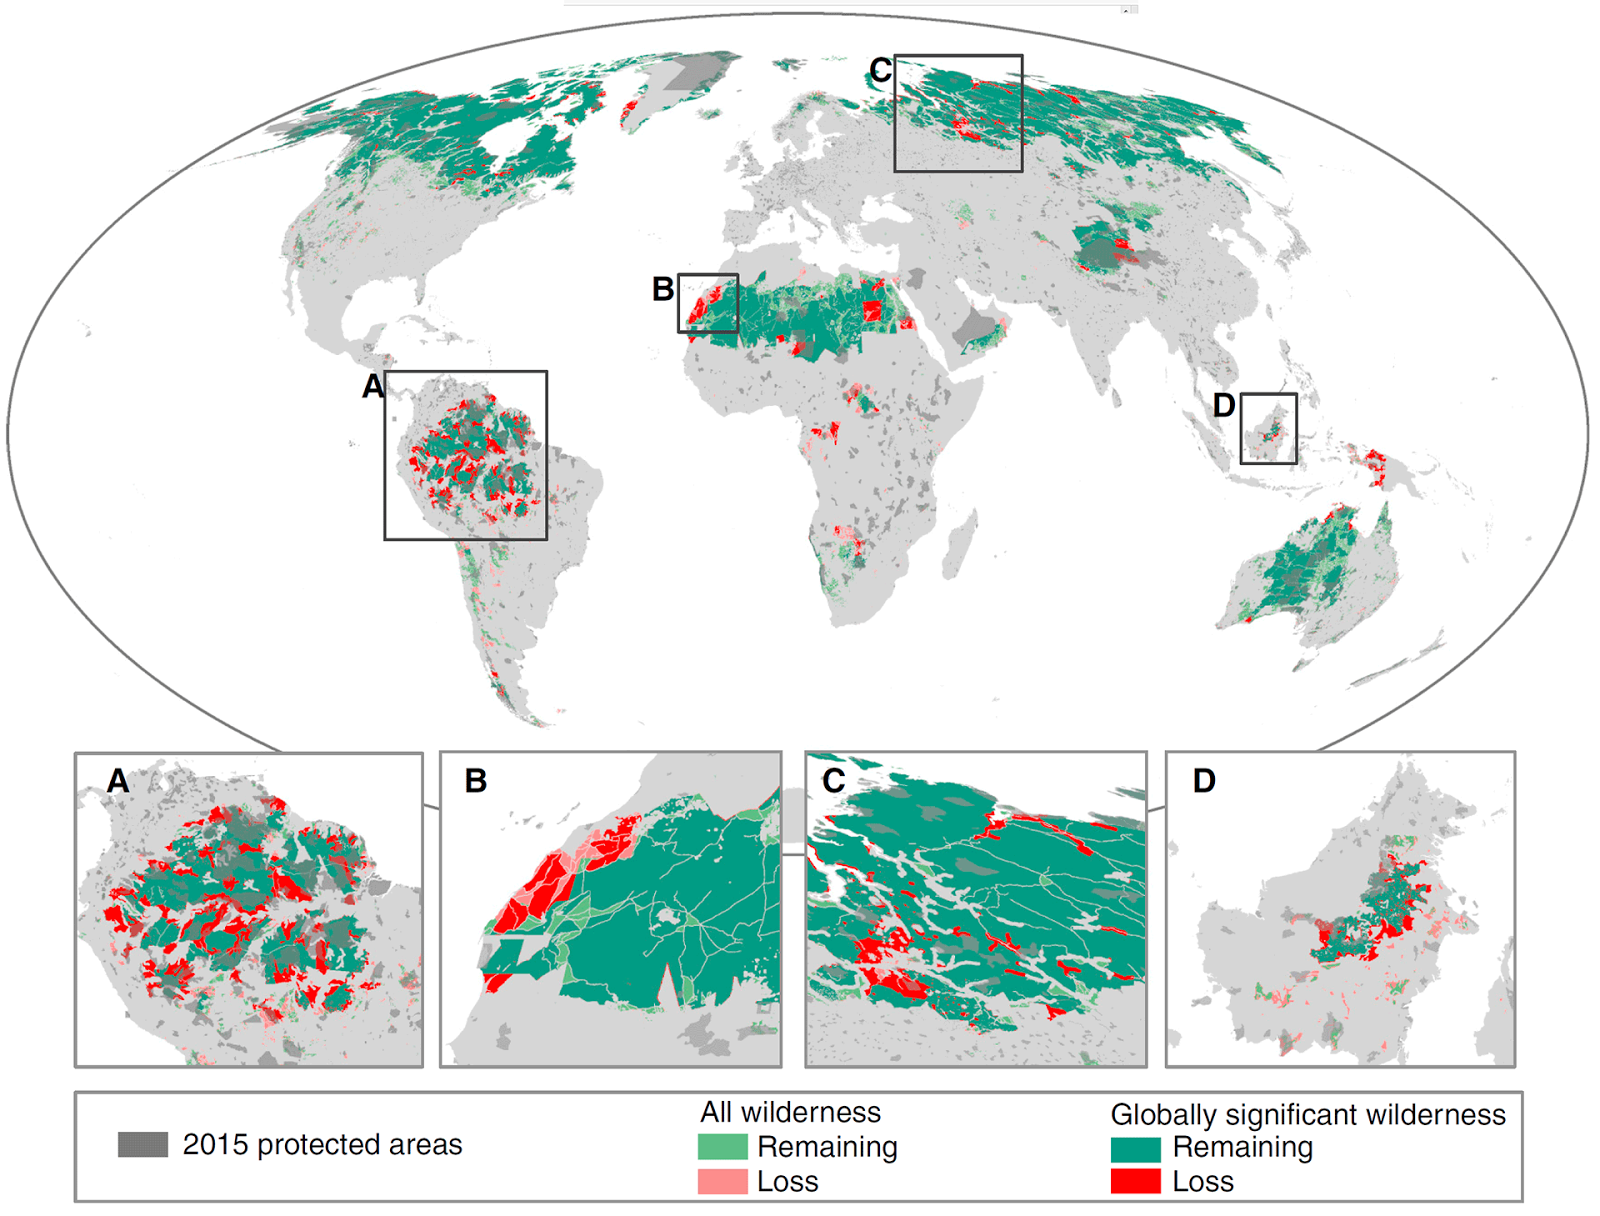 Earth has lost 10 percent of its wilderness since the early 1990s